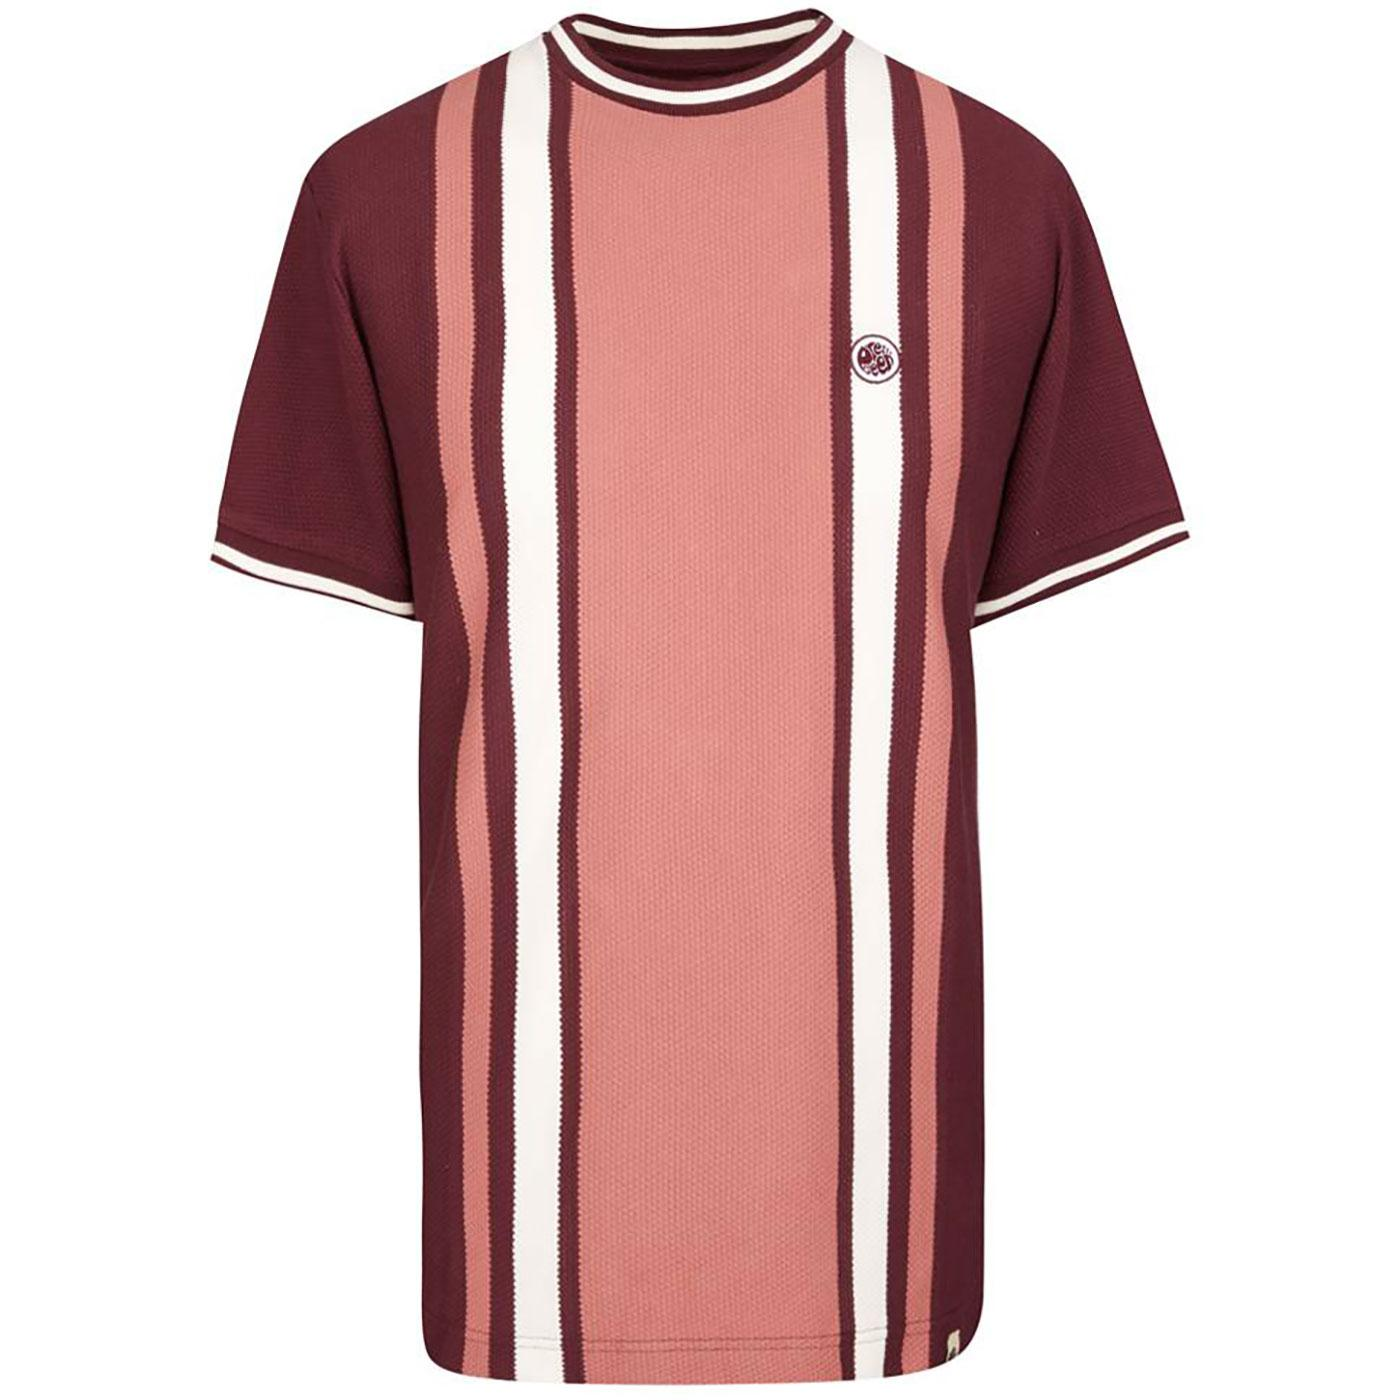 PRETTY GREEN Men's Mod Textured Stripe T-Shirt R